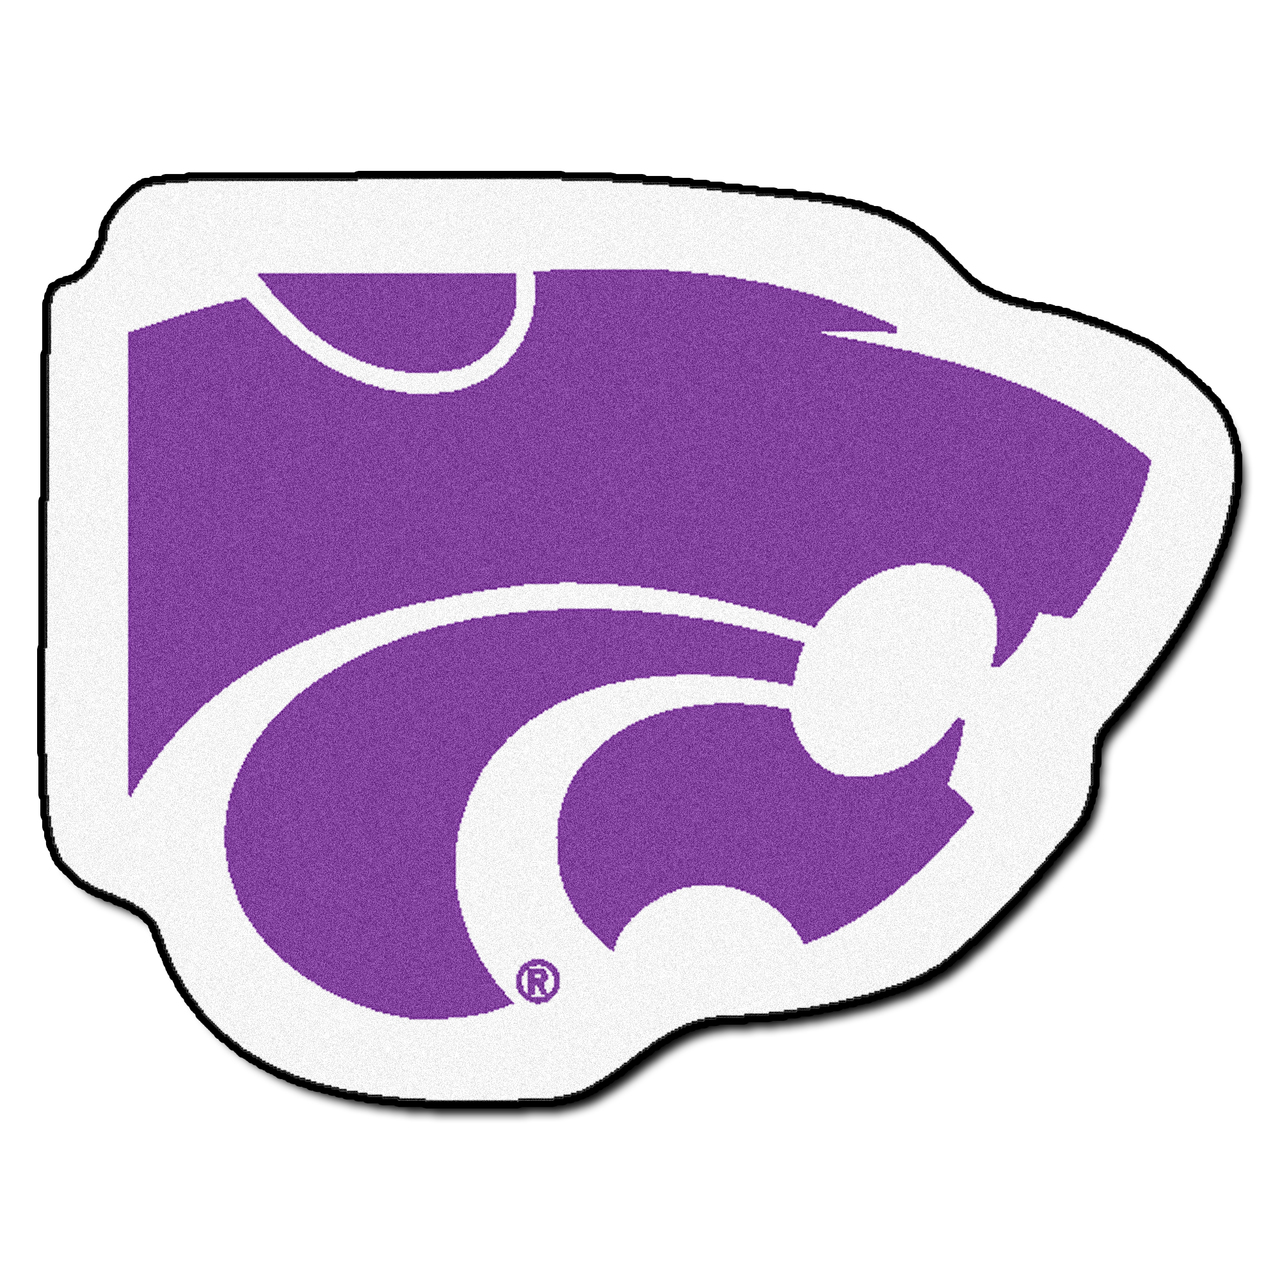 NCAA Kansas State University Wildcats Mascot Novelty Logo Shaped Area Rug.